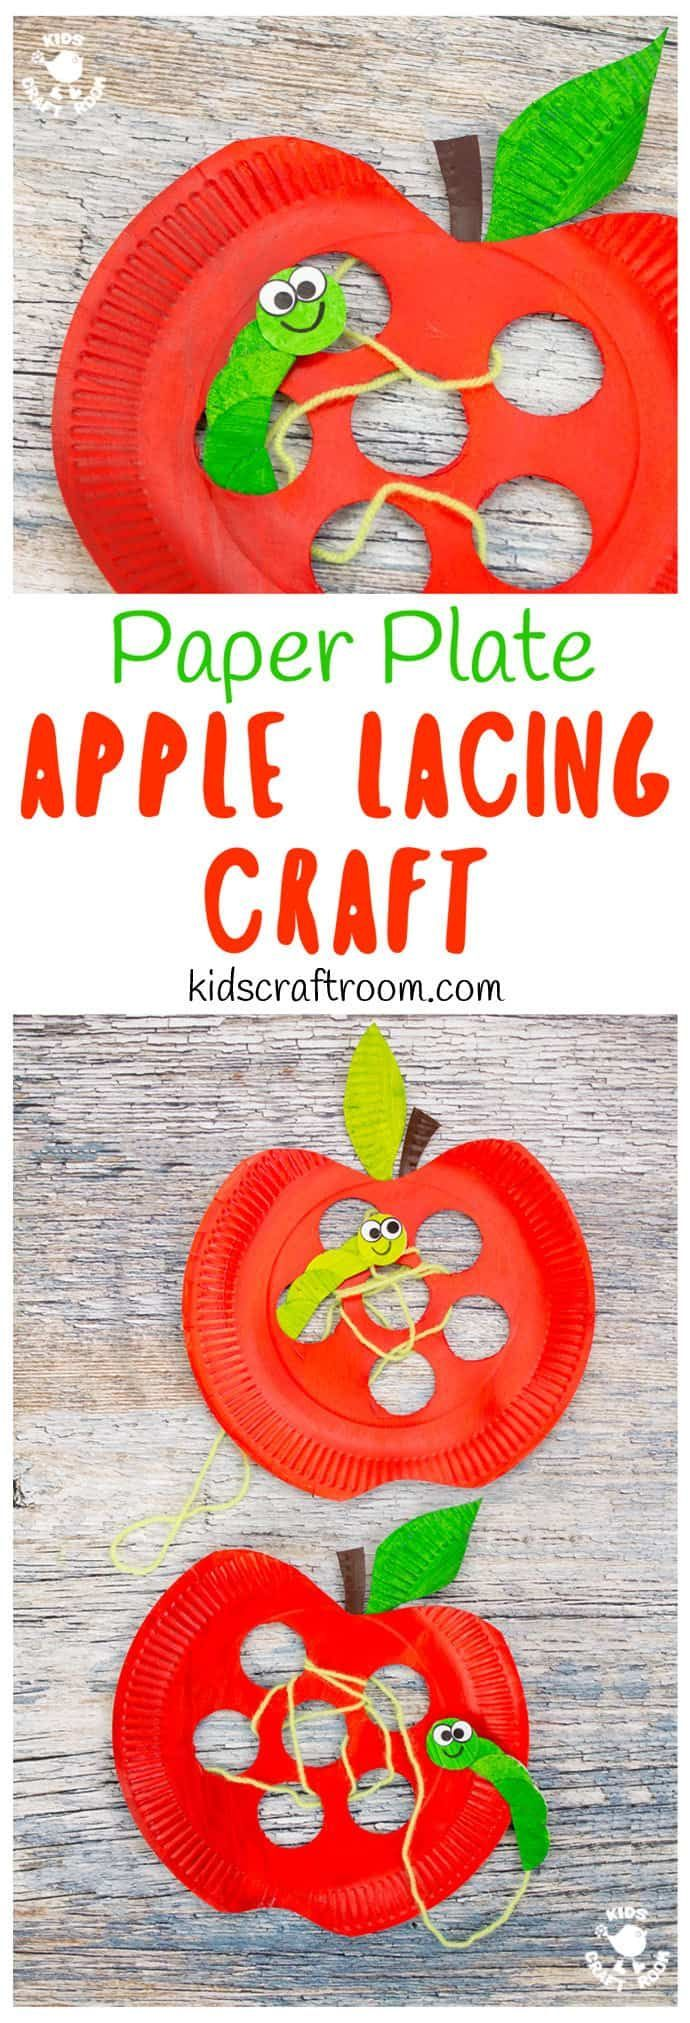 Paper Plate Apple Lacing Craft #fallcraftsforkidspreschool